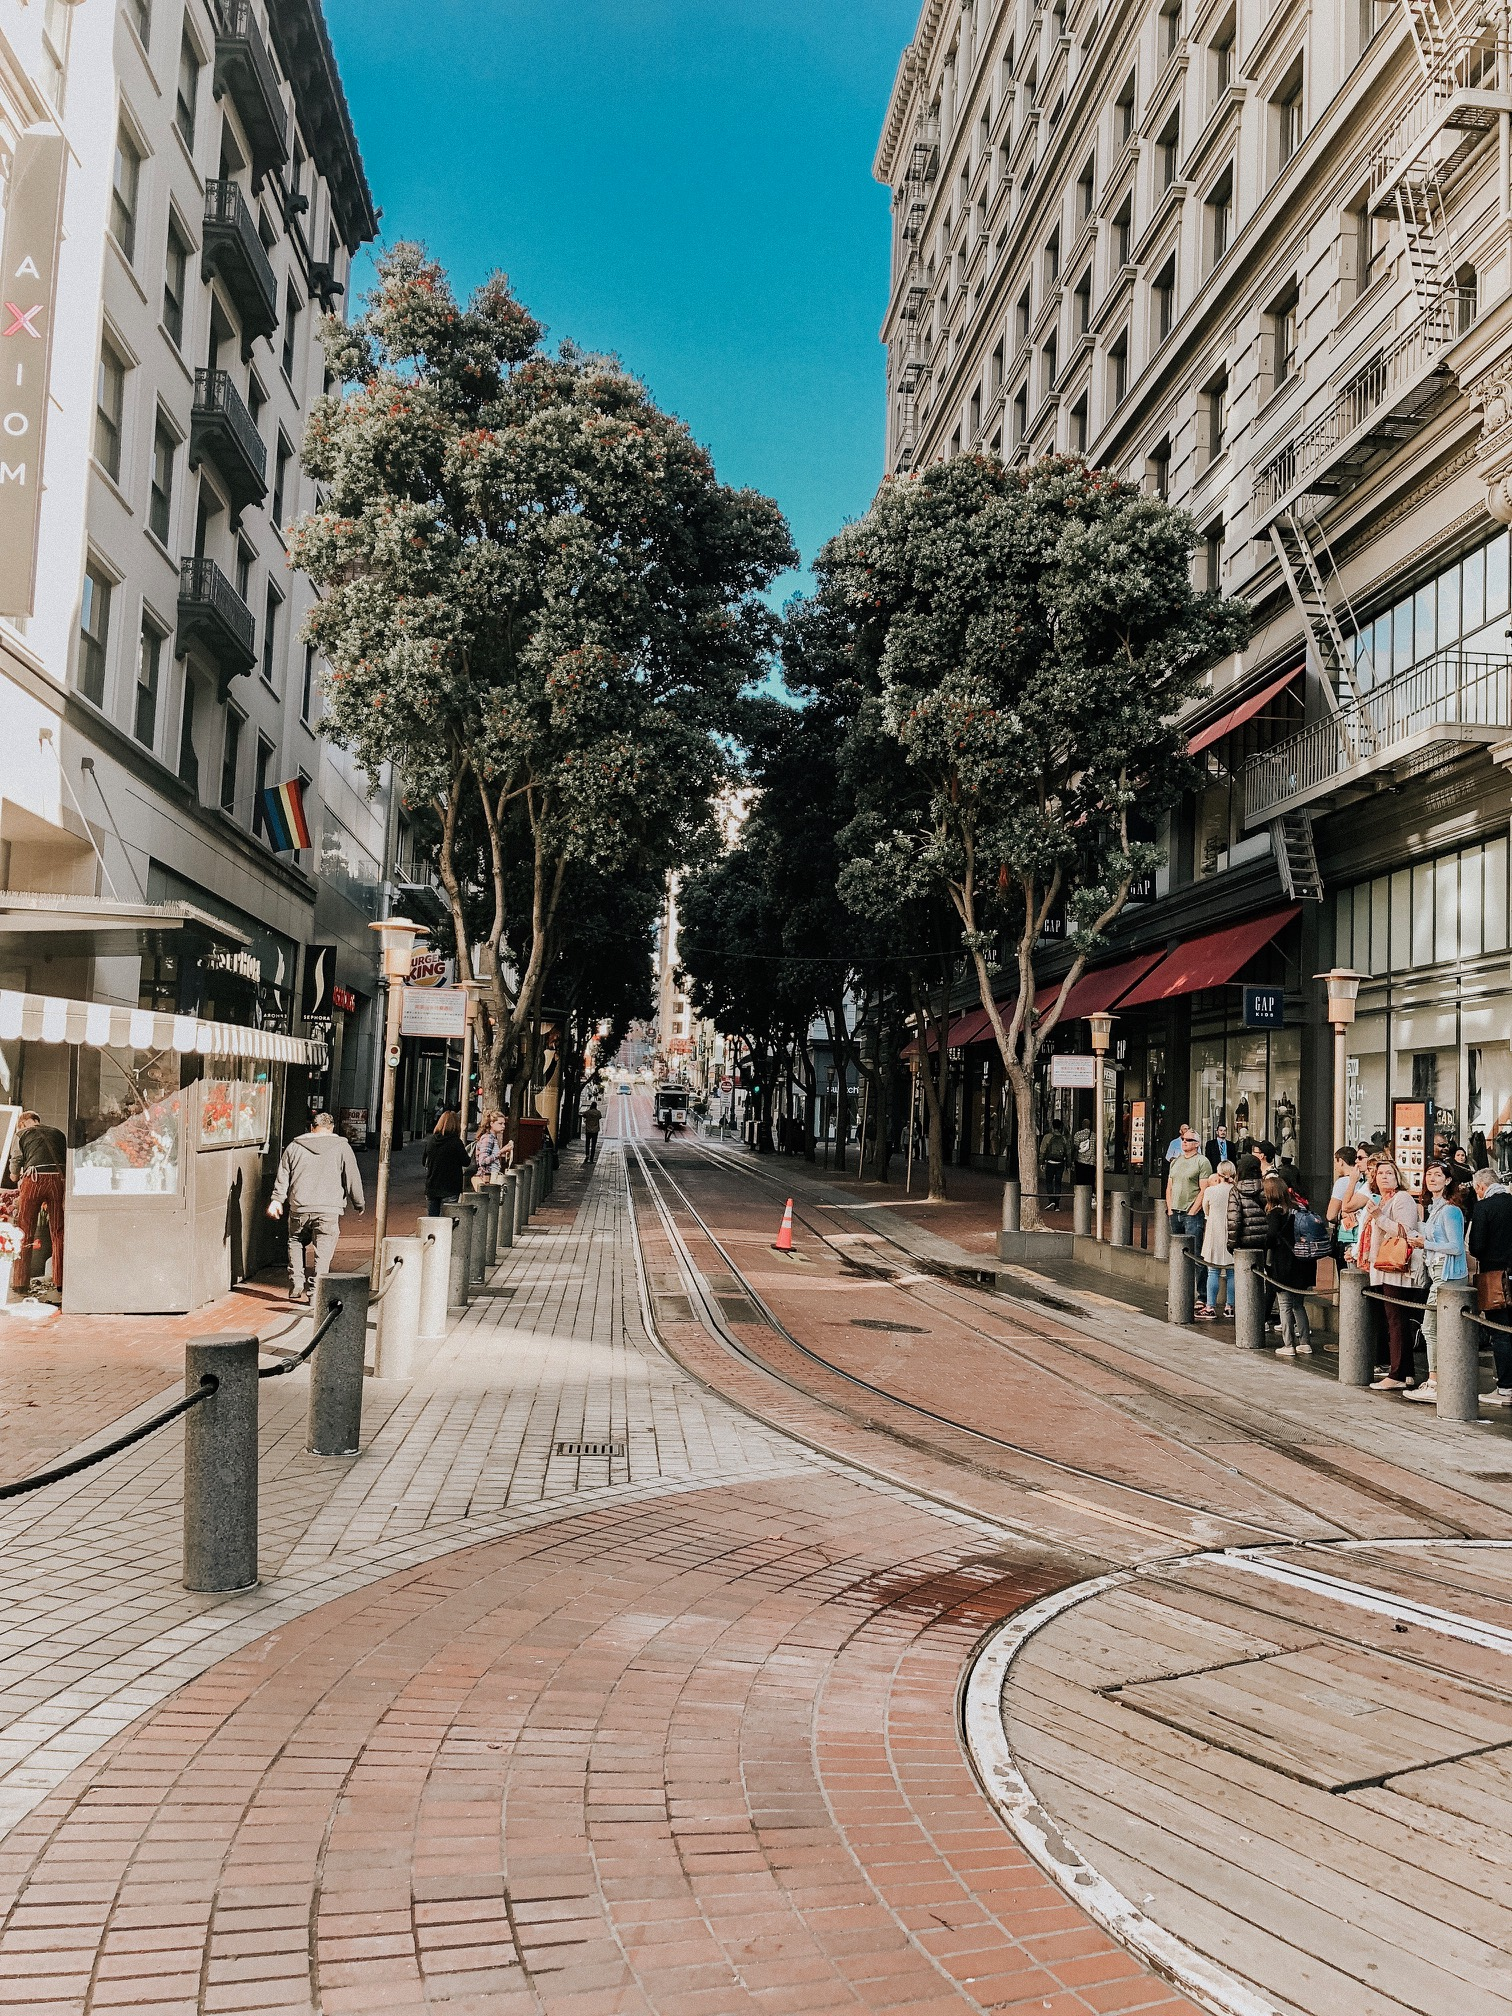 Daily Splendor | Things to do in San Francisco #cablecarride #sanfrancisco #california #marketandpowell